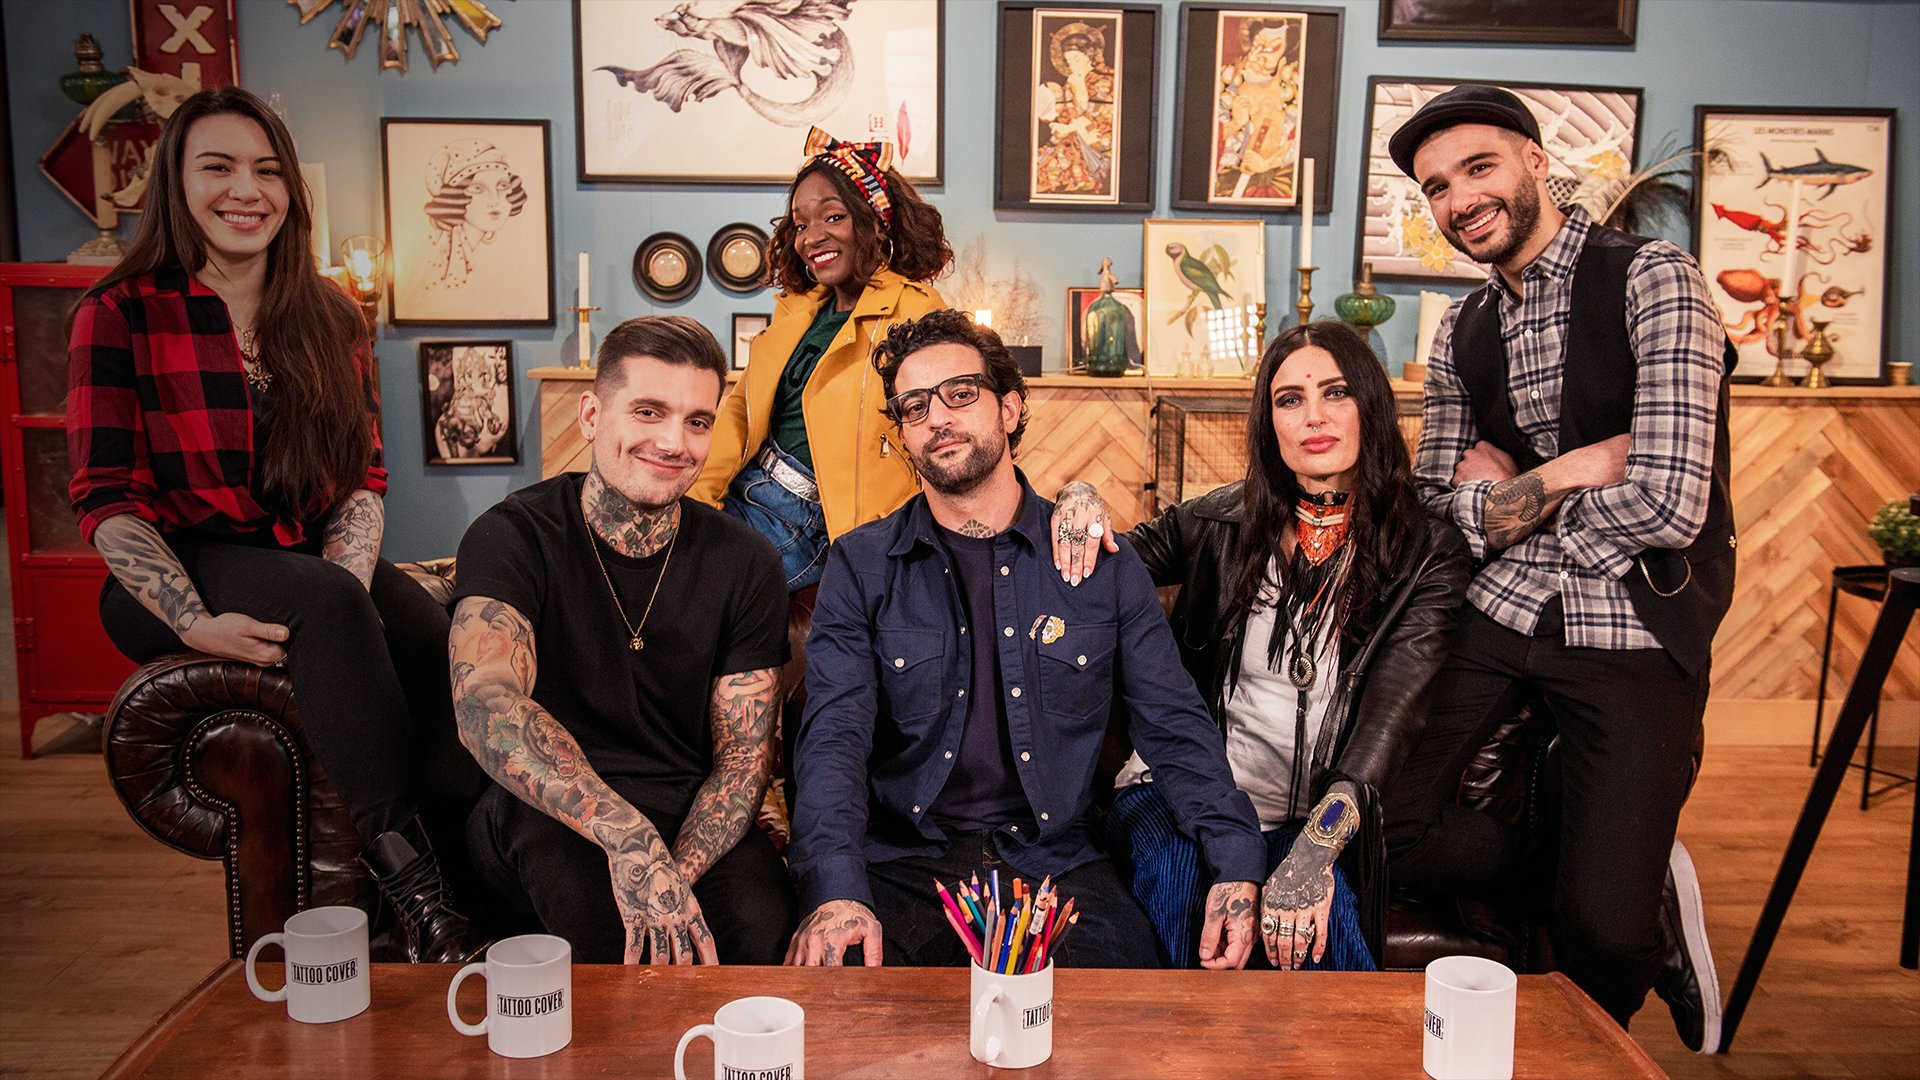 fond Tattoo Cover : Sauveurs de tatouages - Episode du 29 avril 2021